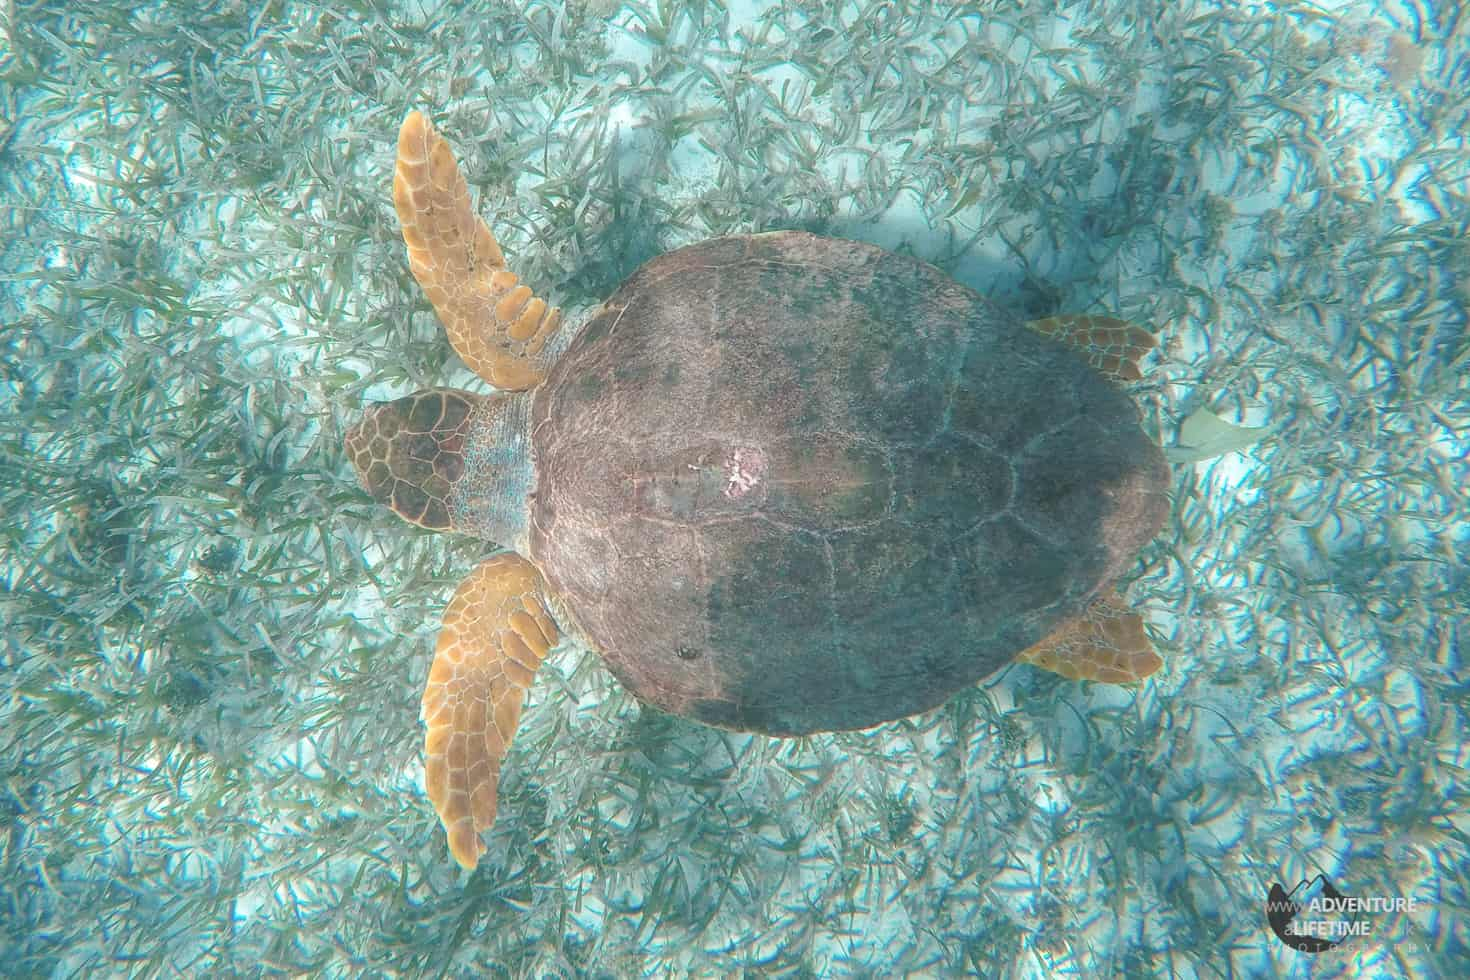 Turtle, Caye Caulker